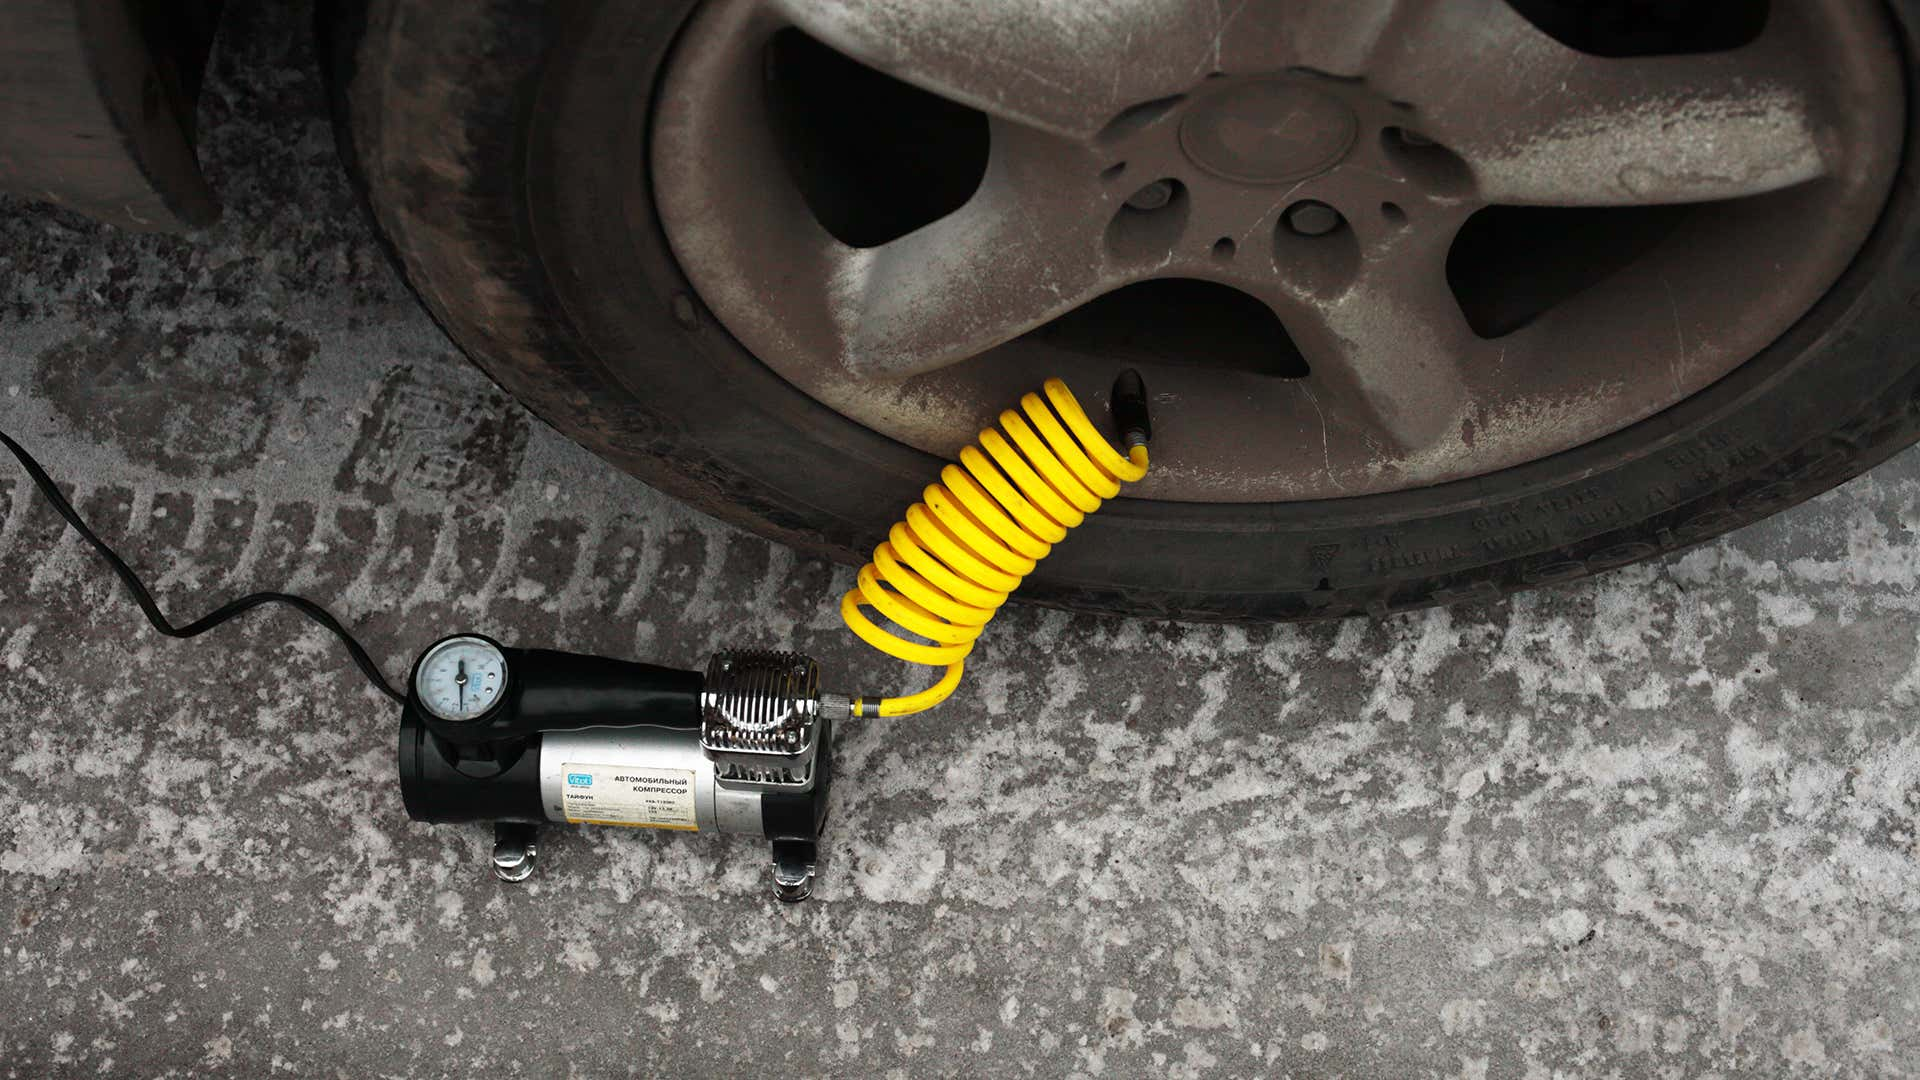 A black tire inflator with a yellow coiled hose connected to a BMW wheel and tire.